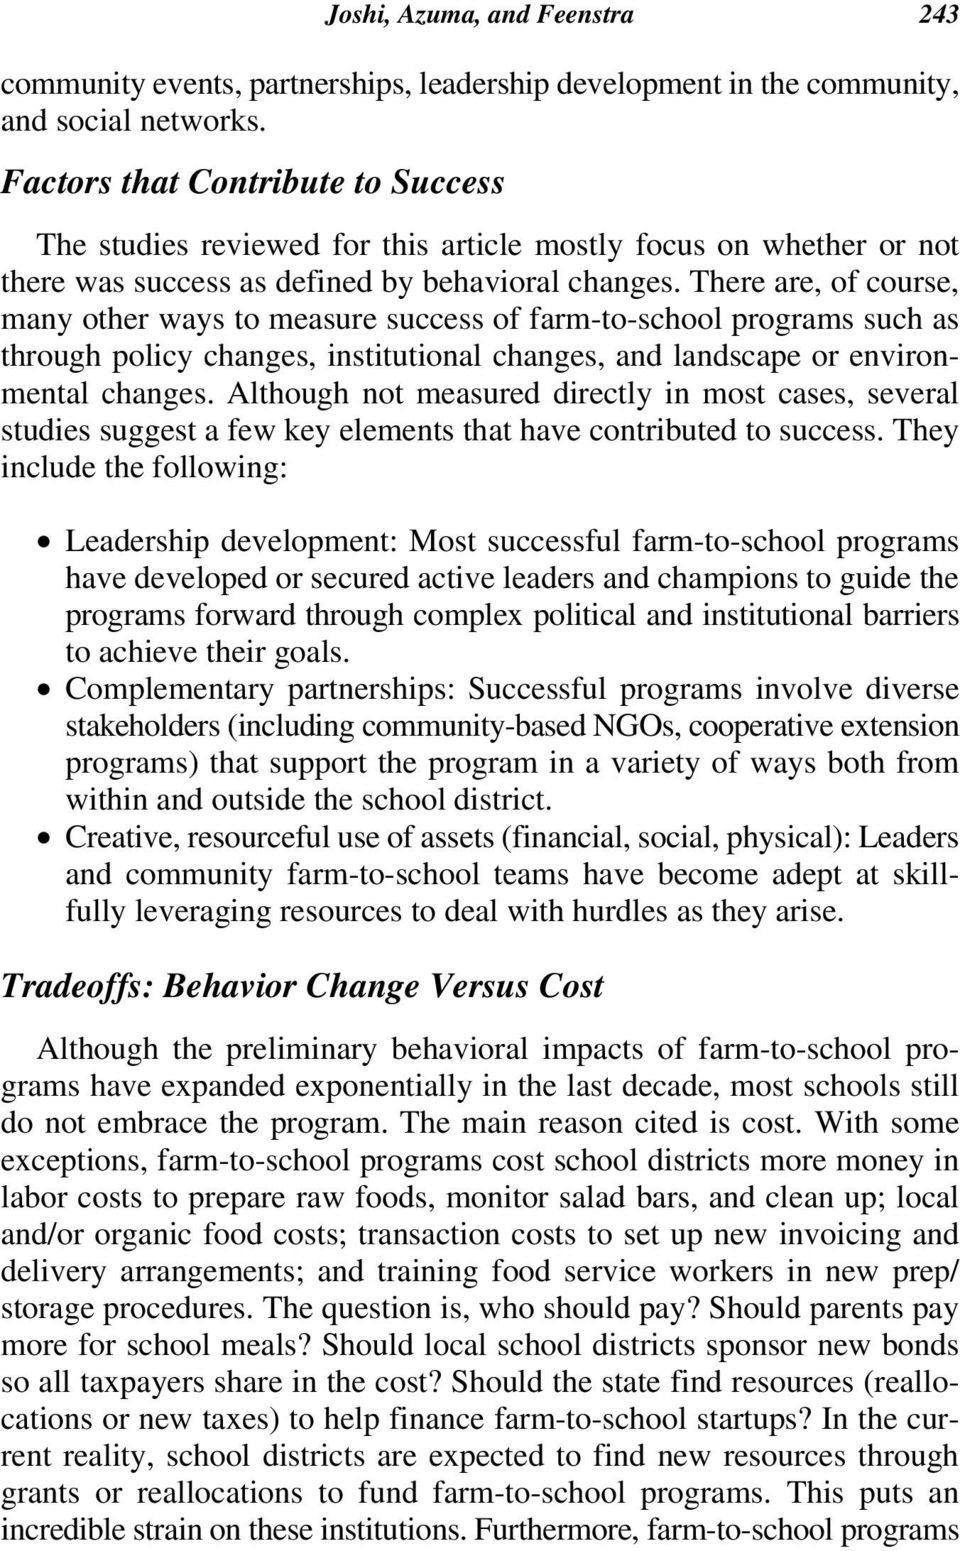 There are, of course, many other ways to measure success of farm-to-school programs such as through policy changes, institutional changes, and landscape or environmental changes.